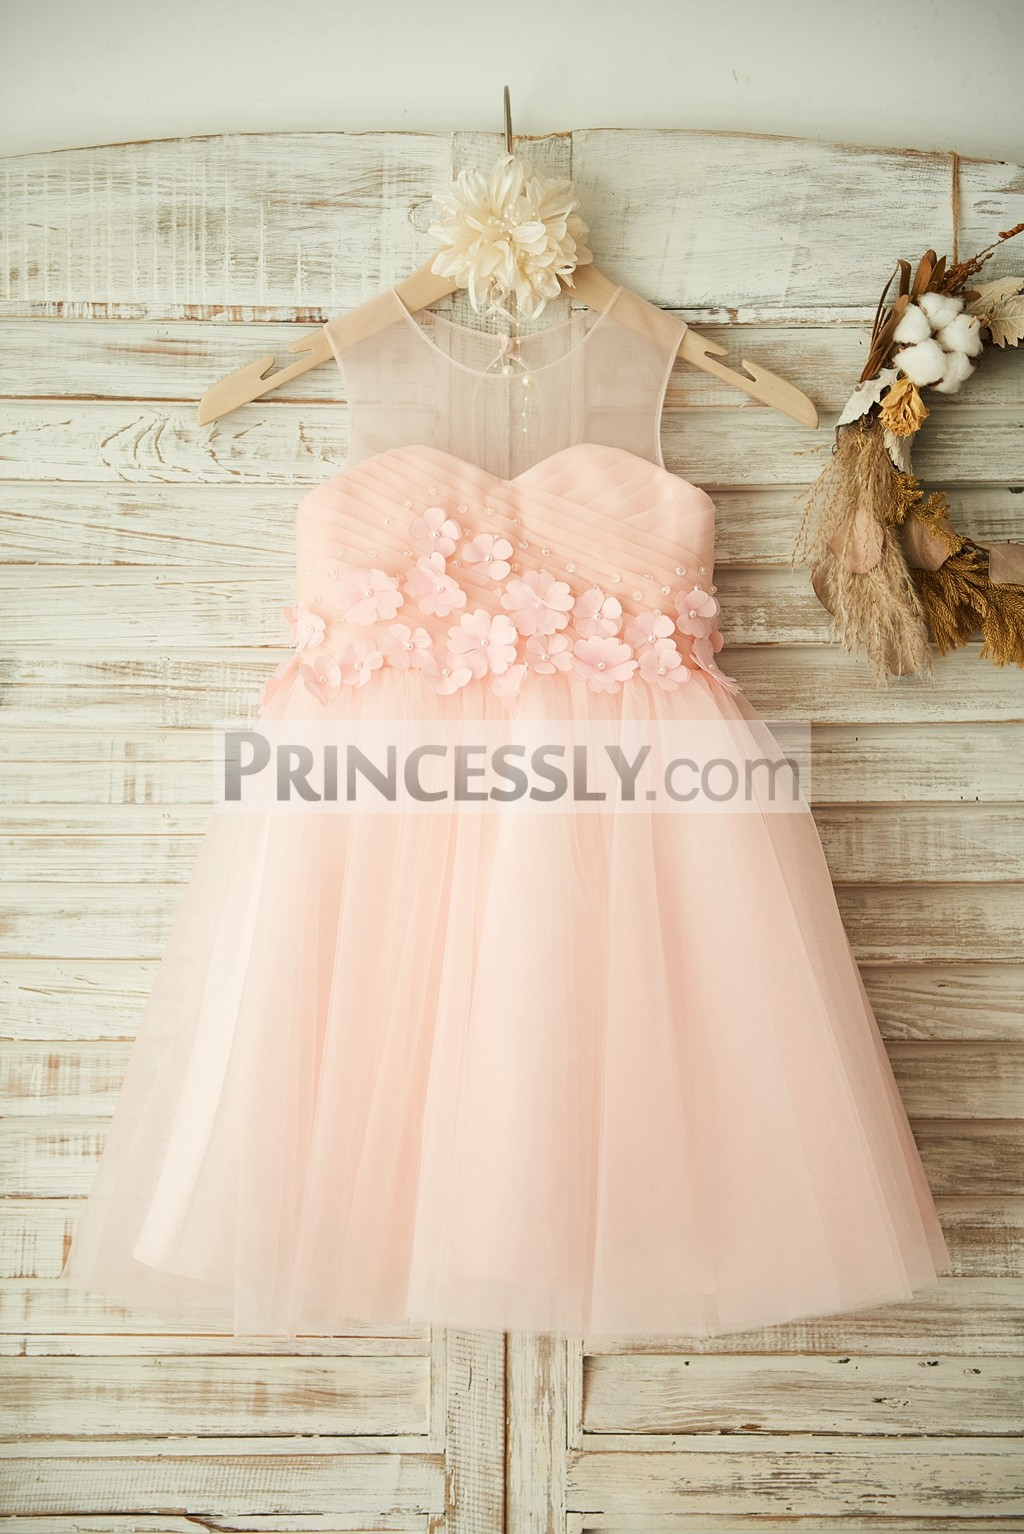 Pink Sheer Beads Flowers Cross Pleated Tutu Tulle Wedding Flower Dress